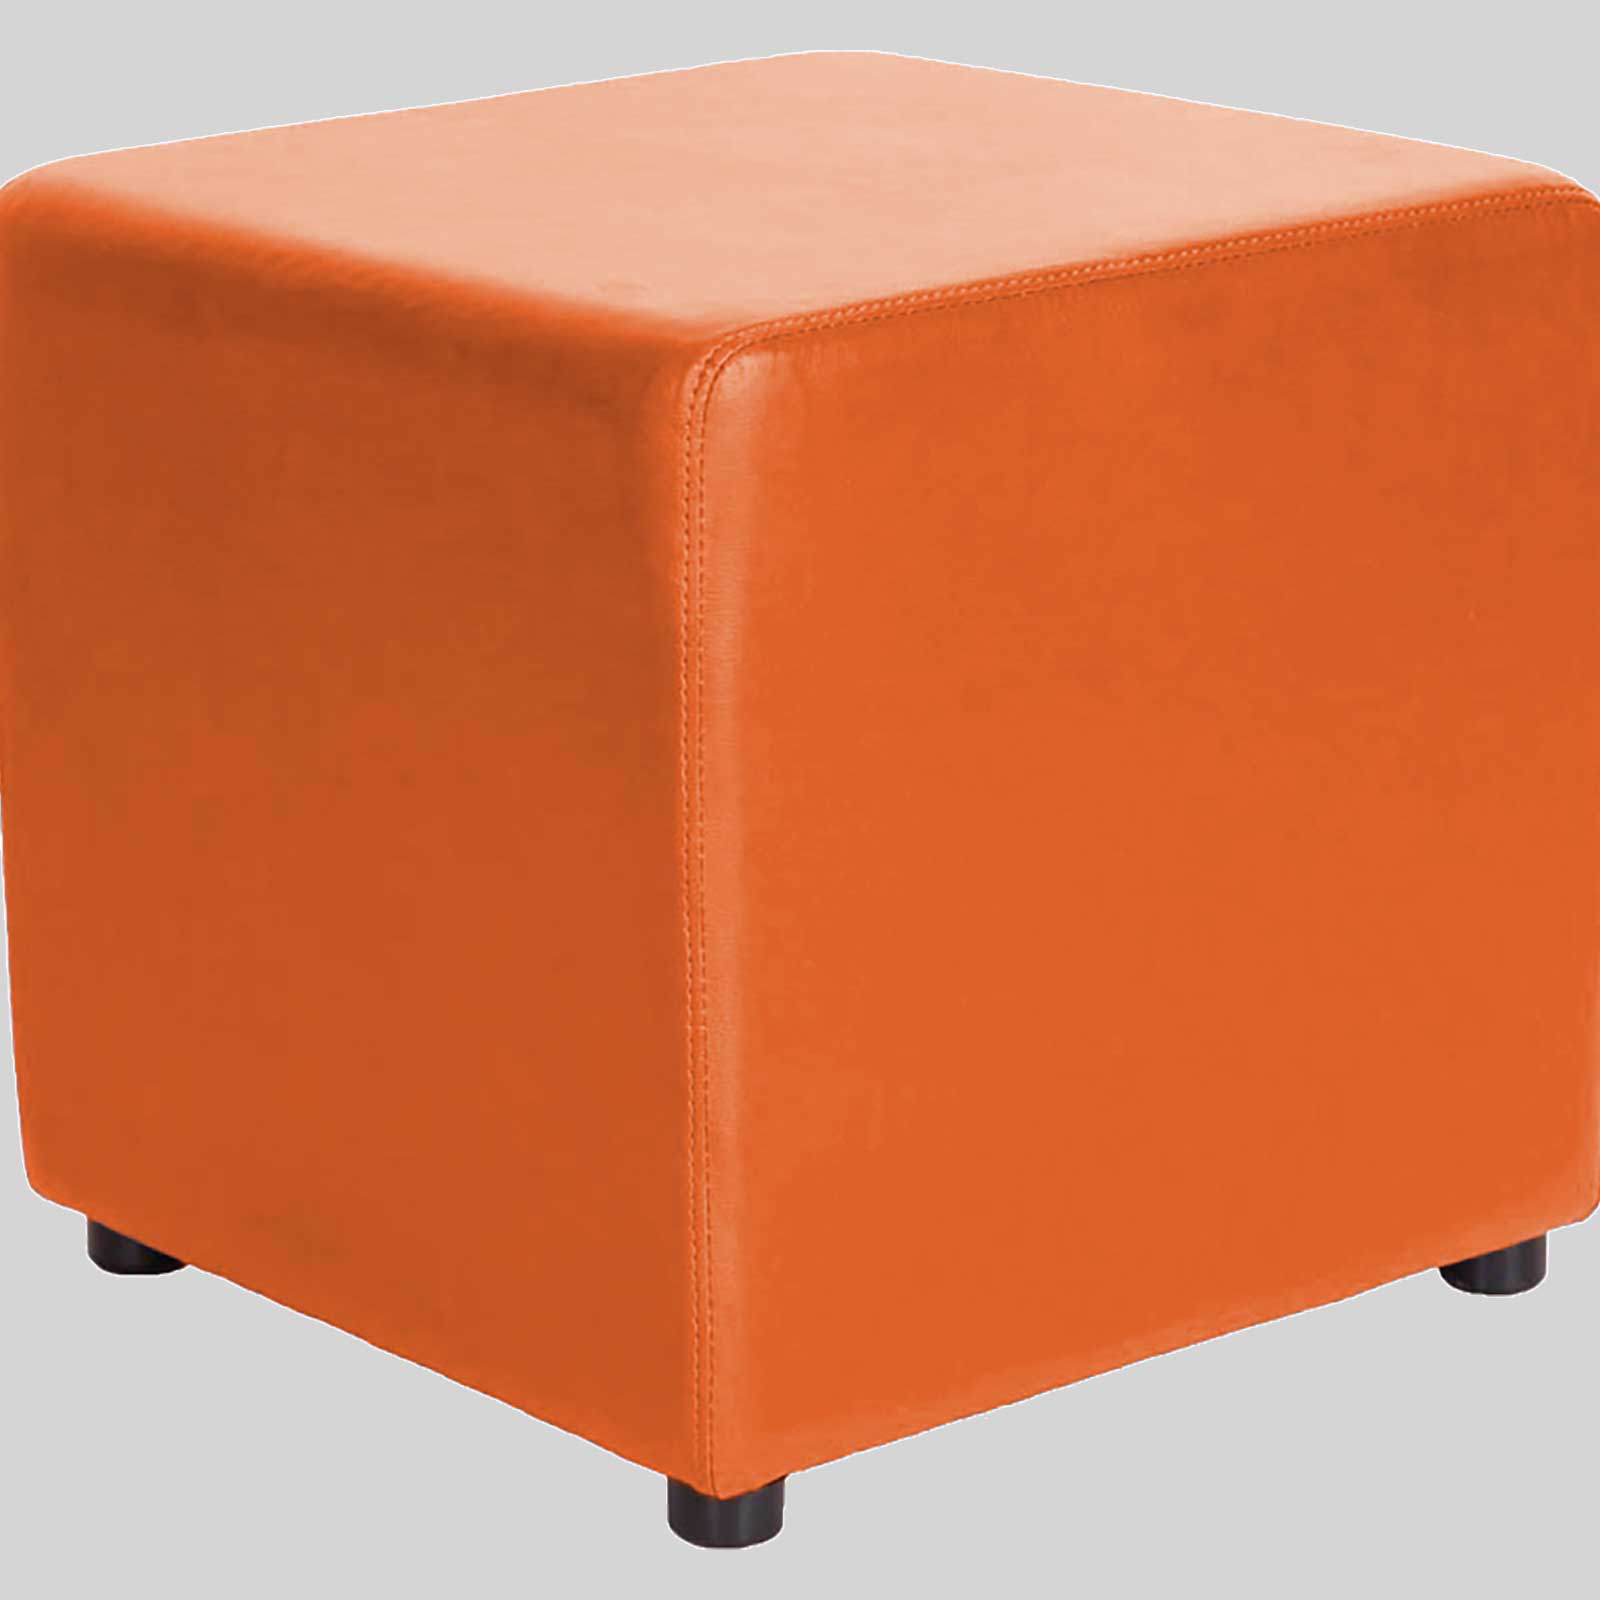 orange cafe chairs adirondack chair and ottoman commercial quality sqaure | concept collections